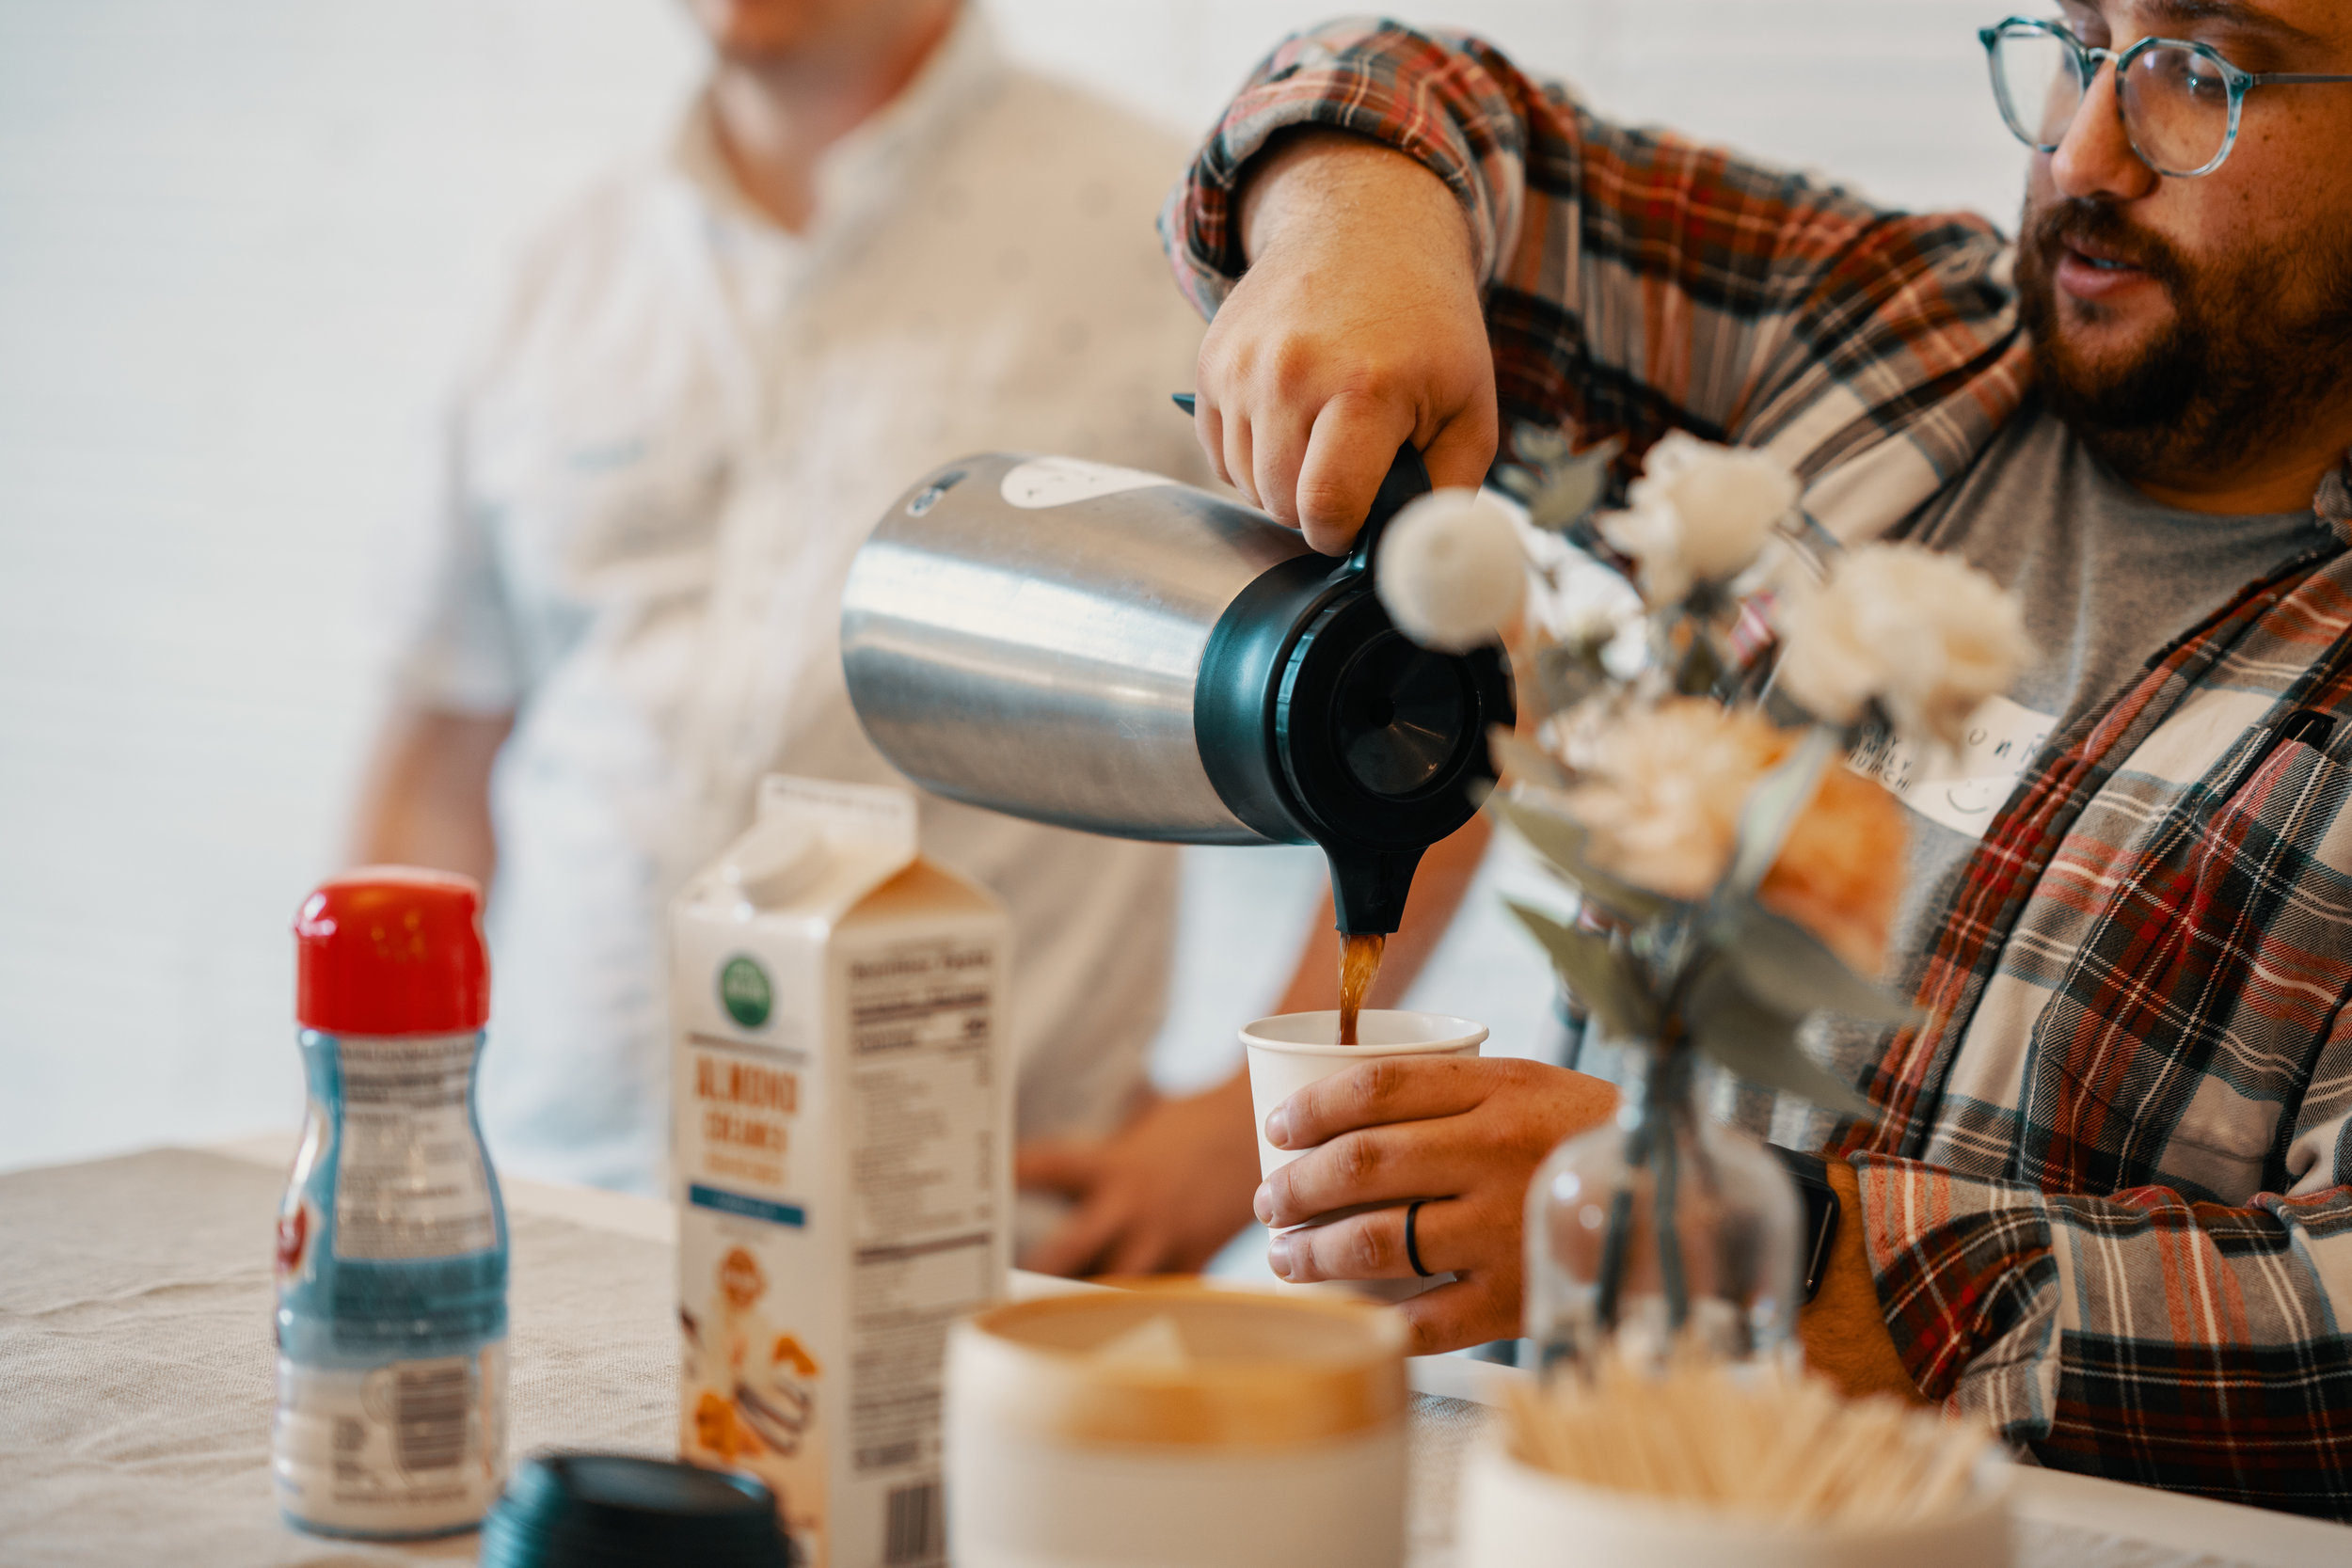 COFFEE - You will be given a booklet when you enter that will help guide you through participating in the liturgy. We're happy to serve you a cup of Greenway Coffee that you can enjoy while you meet some people you'll be worshipping with before we begin.